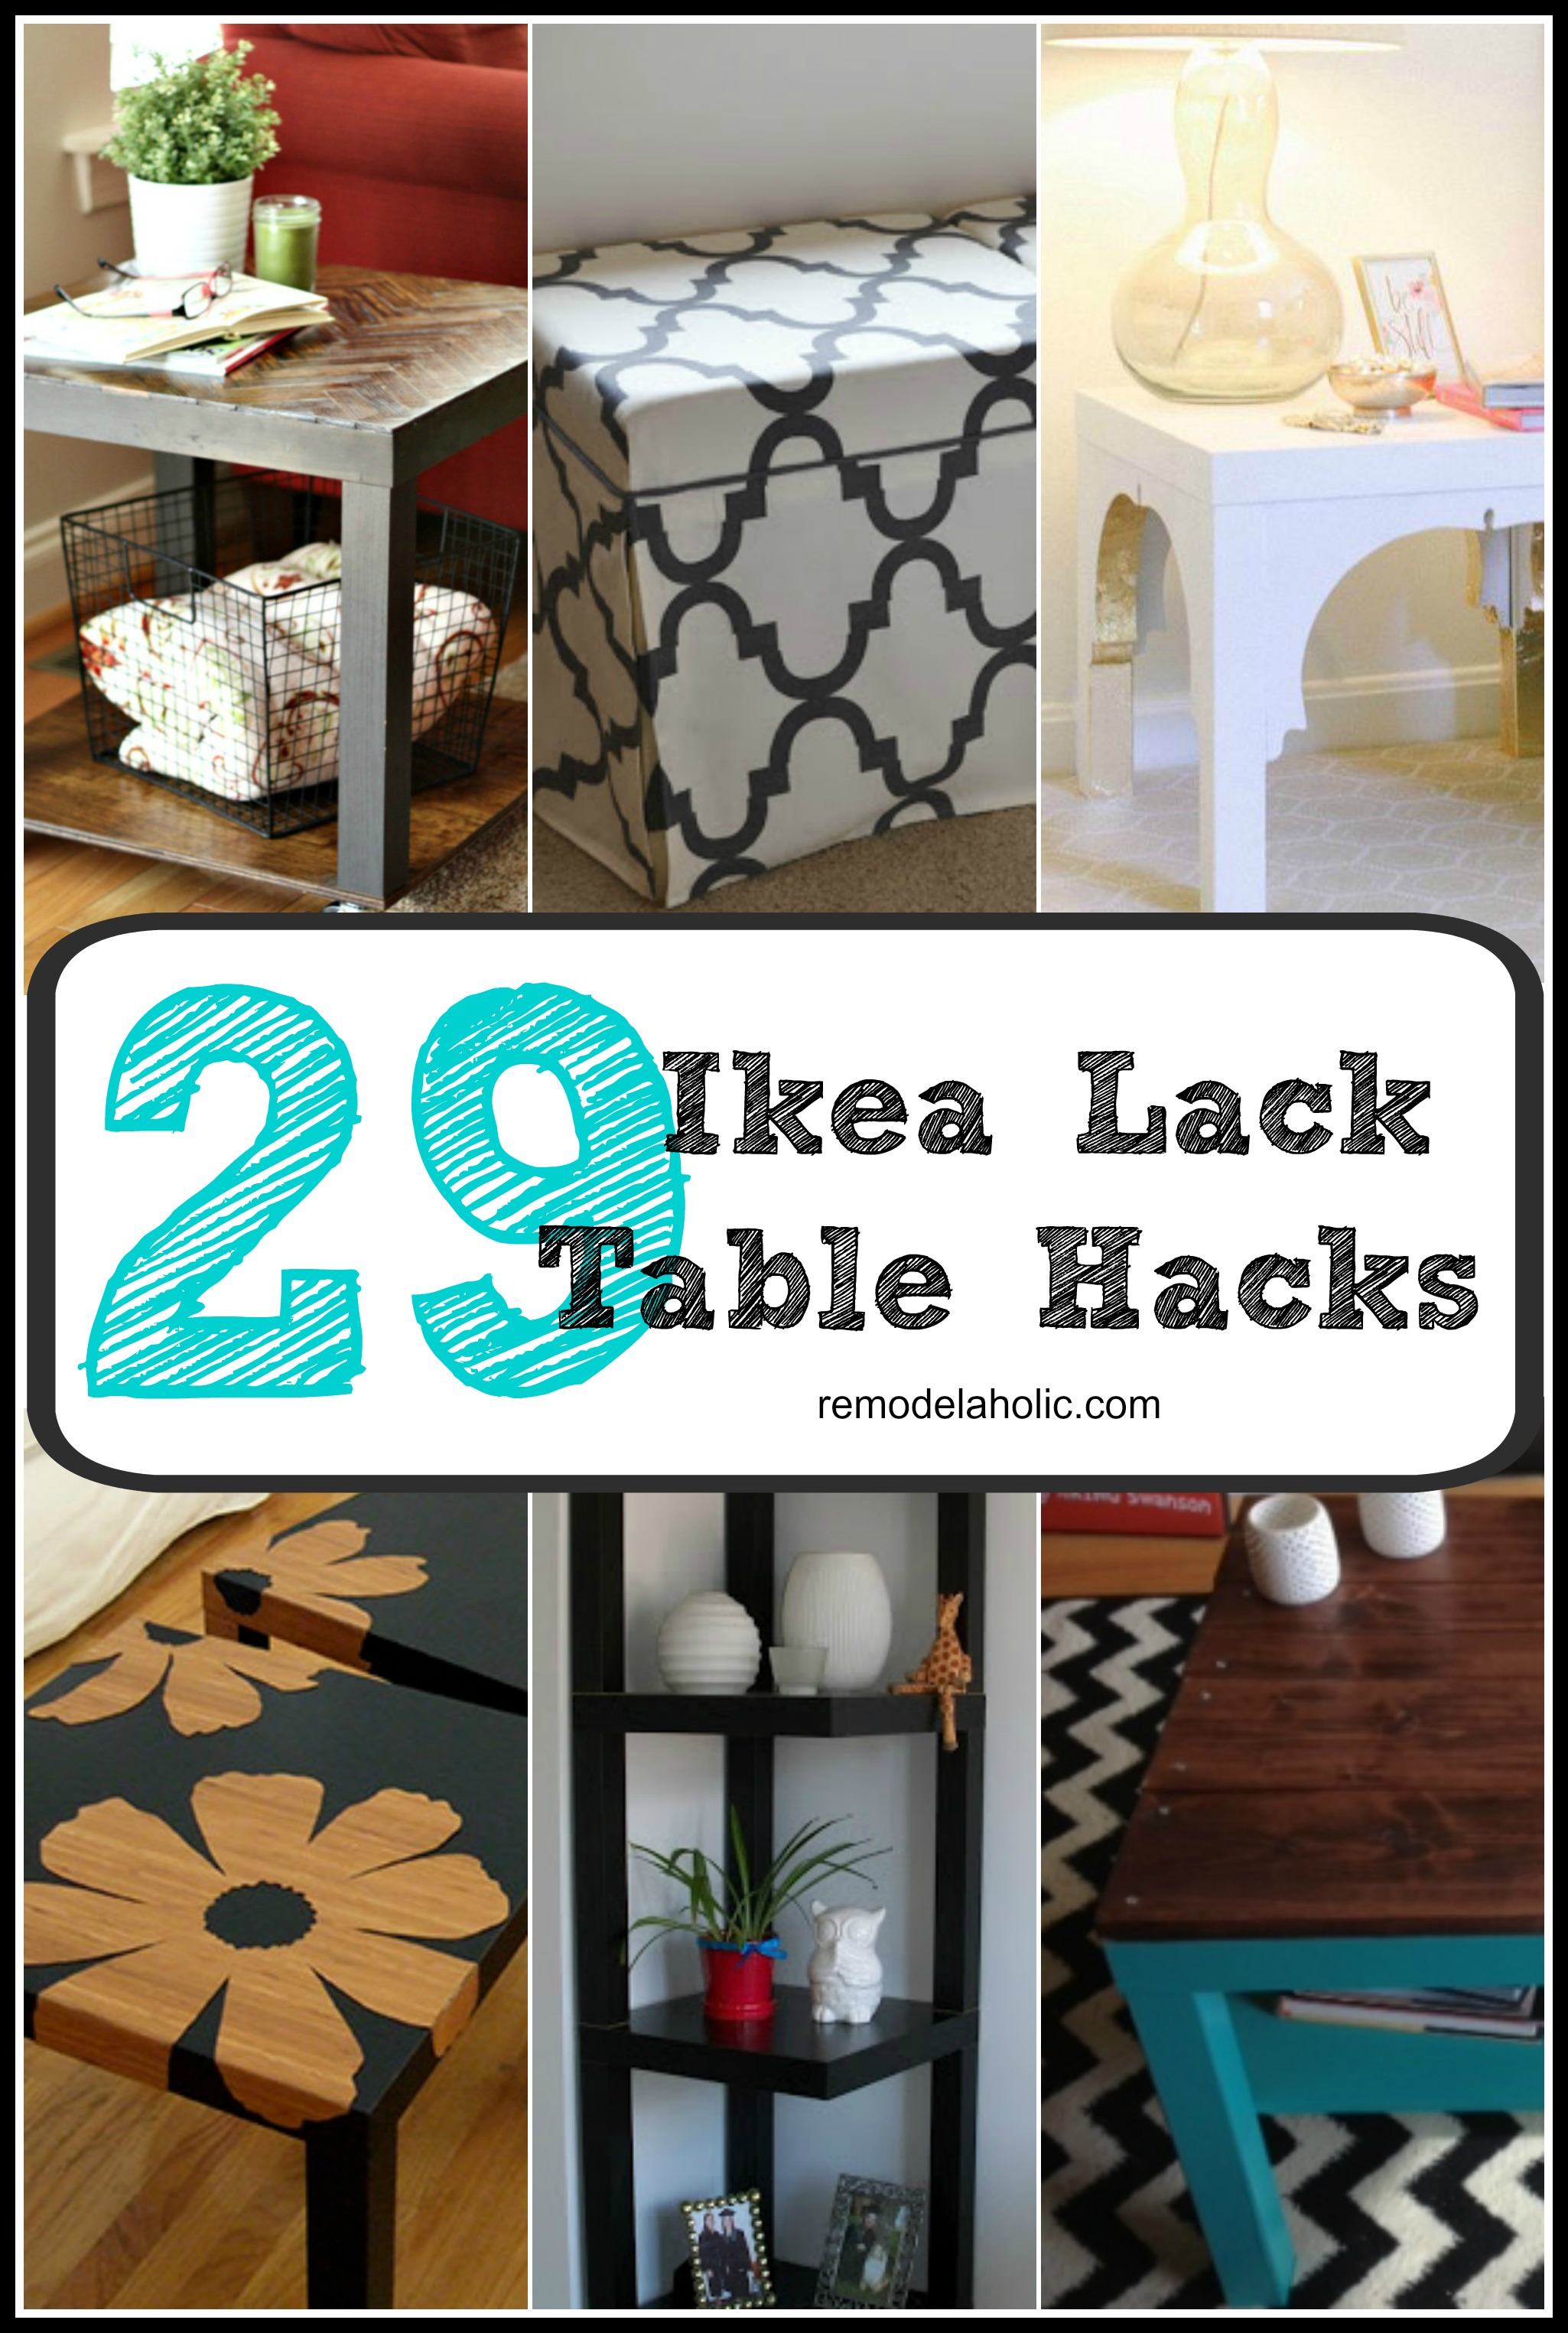 Ikea Lack Side Table Remodelaholic | From Bargain To Beautiful: 29 Stylish Ikea